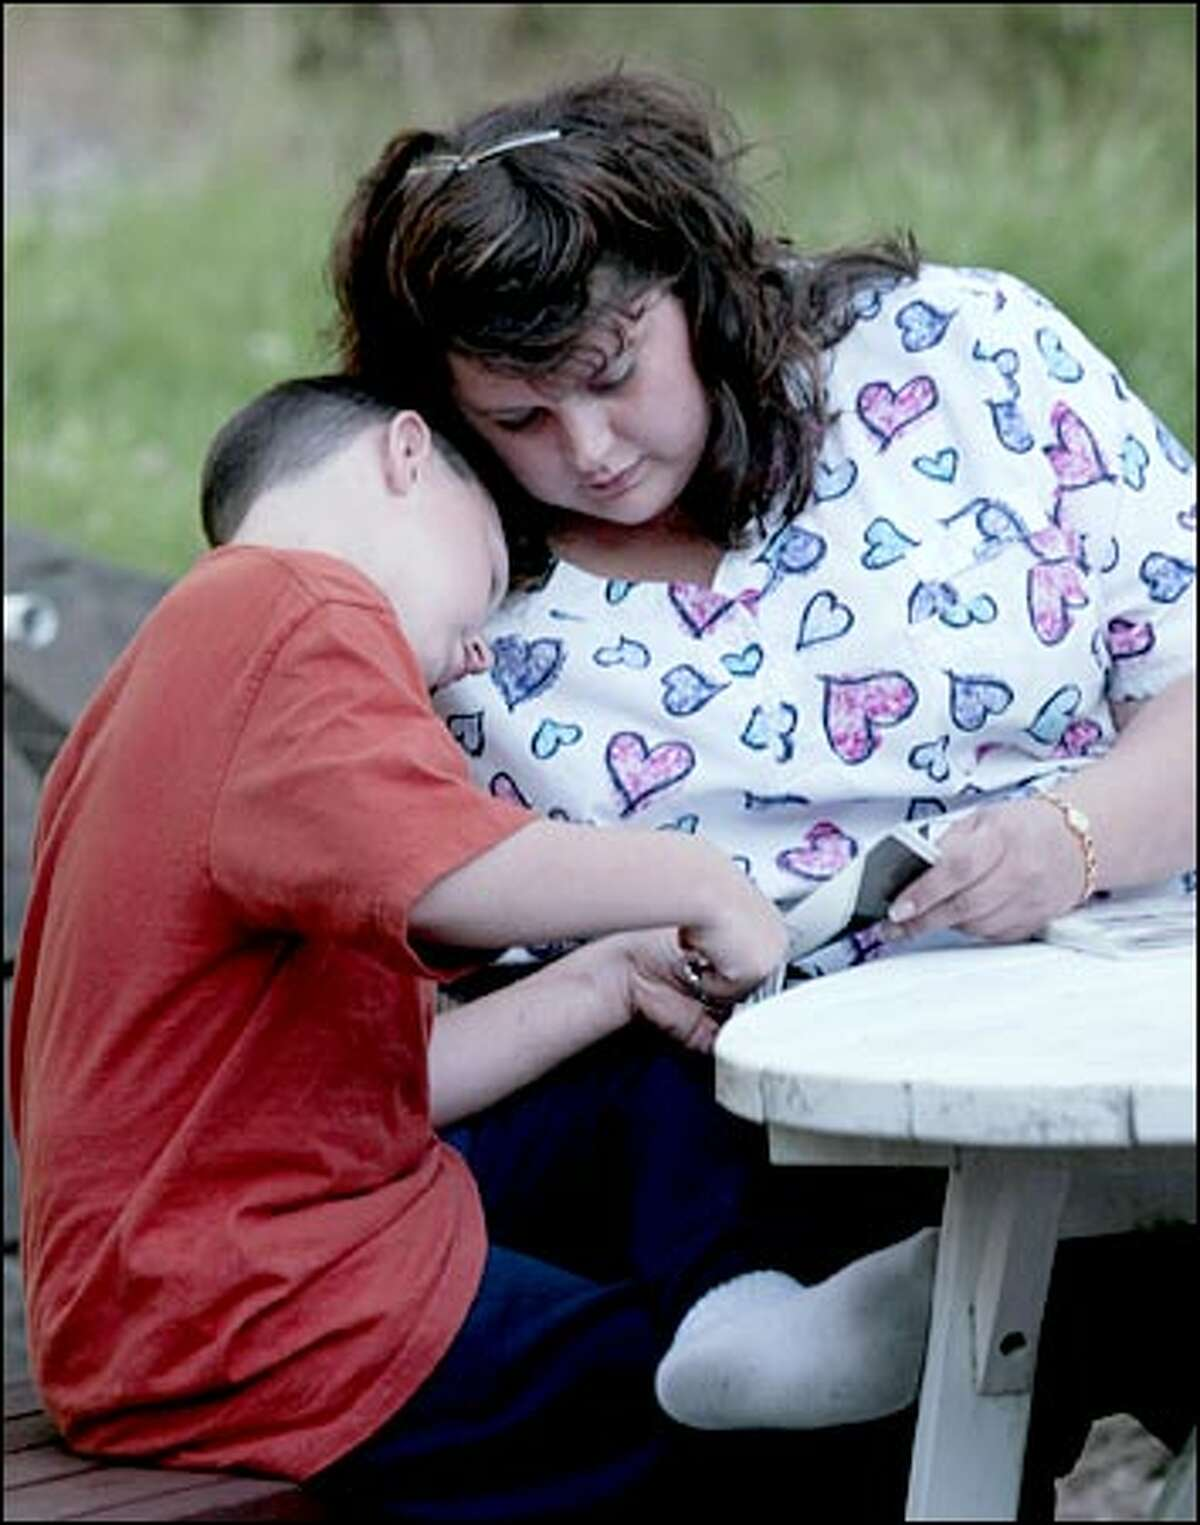 Christopher Bateman and his mom, Michelle, cut out a paper airplane. Bateman was accused by Dr. Kenneth Feldman of intentionally poisoning her son. Bateman lost custody of her son until a CPS inquiry cleared her.